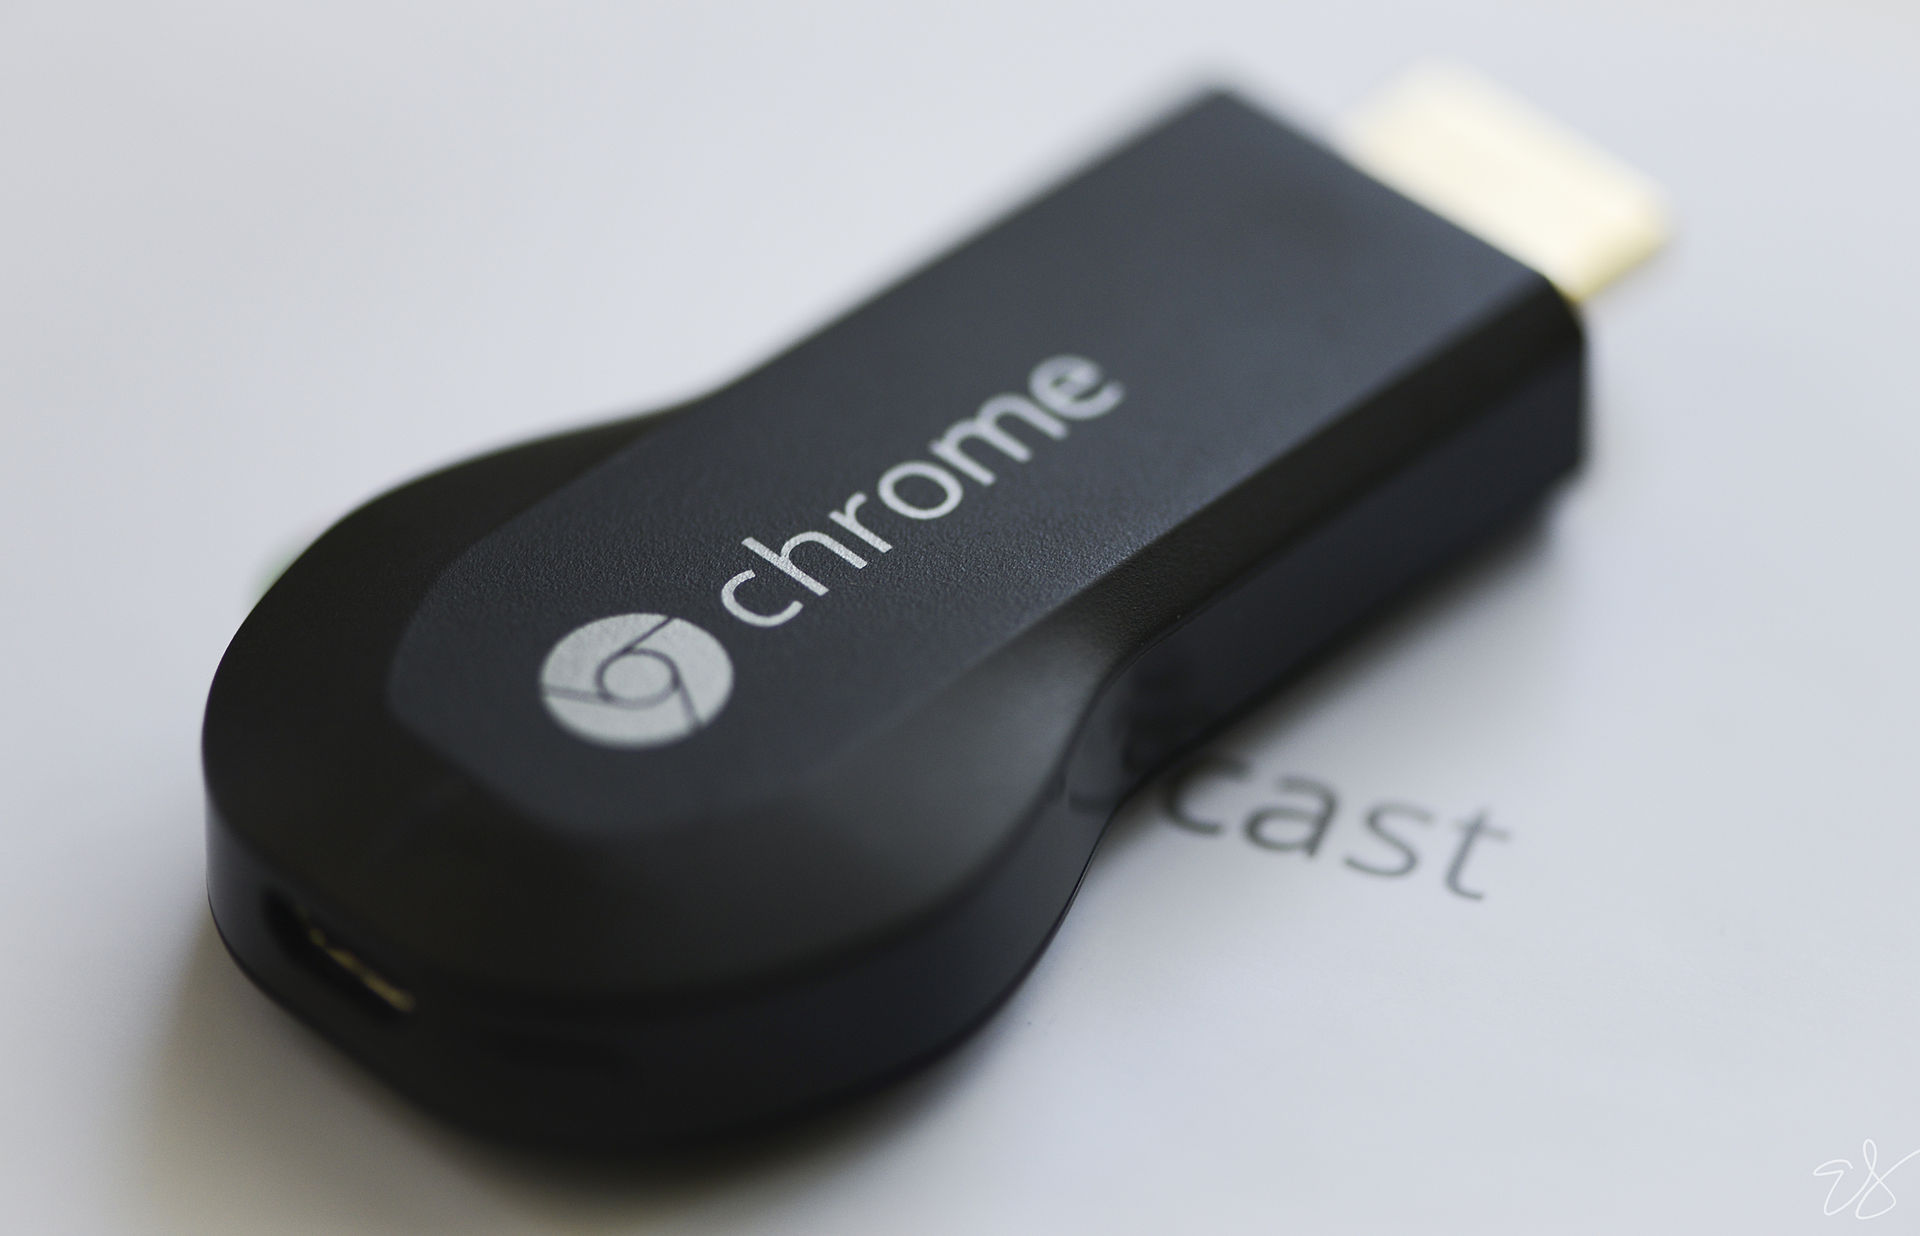 Difference Between Chromecast and Apple TV